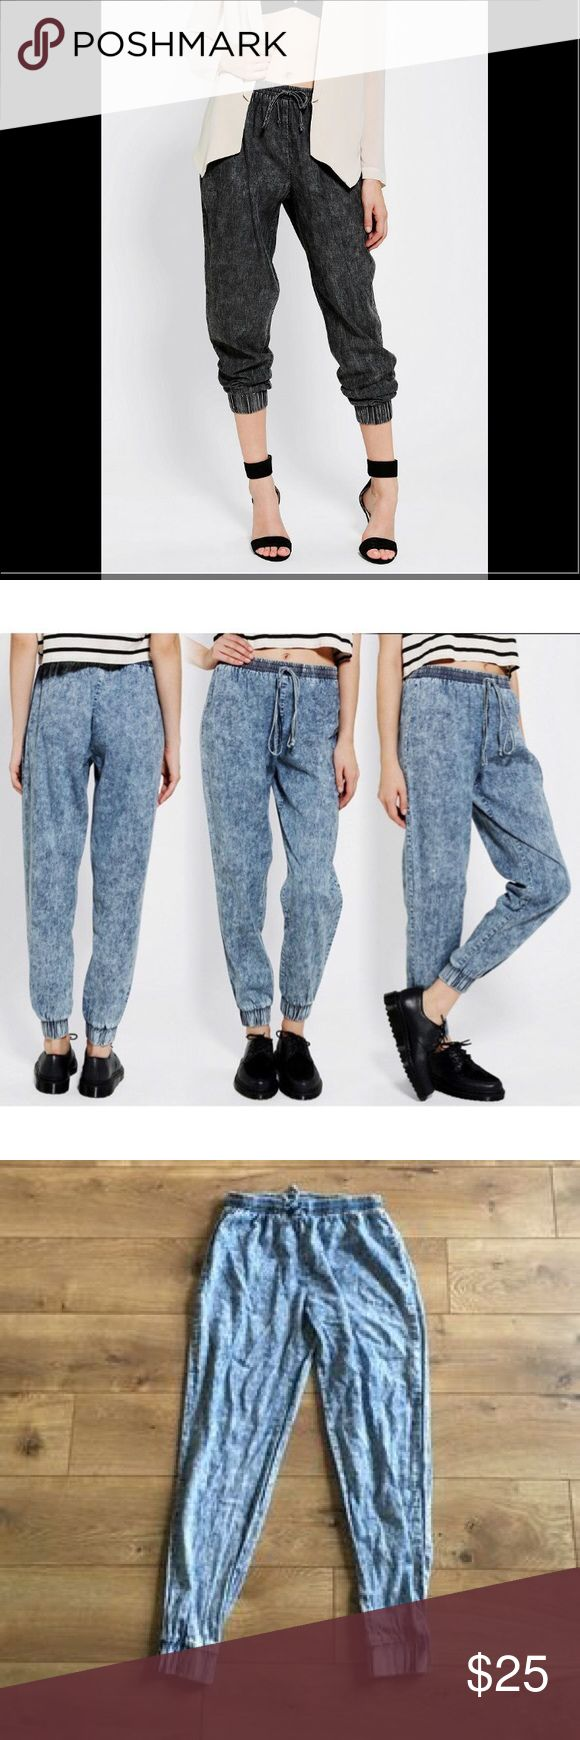 Urban Outfitters Sparkle and Fade Acid wash jogger Urban Outfitters Sparkle and Fade Acid wash joggers XS for perfect for dressing up with heels or wearing with sneakers. Urban Outfitters Pants Track Pants & Joggers